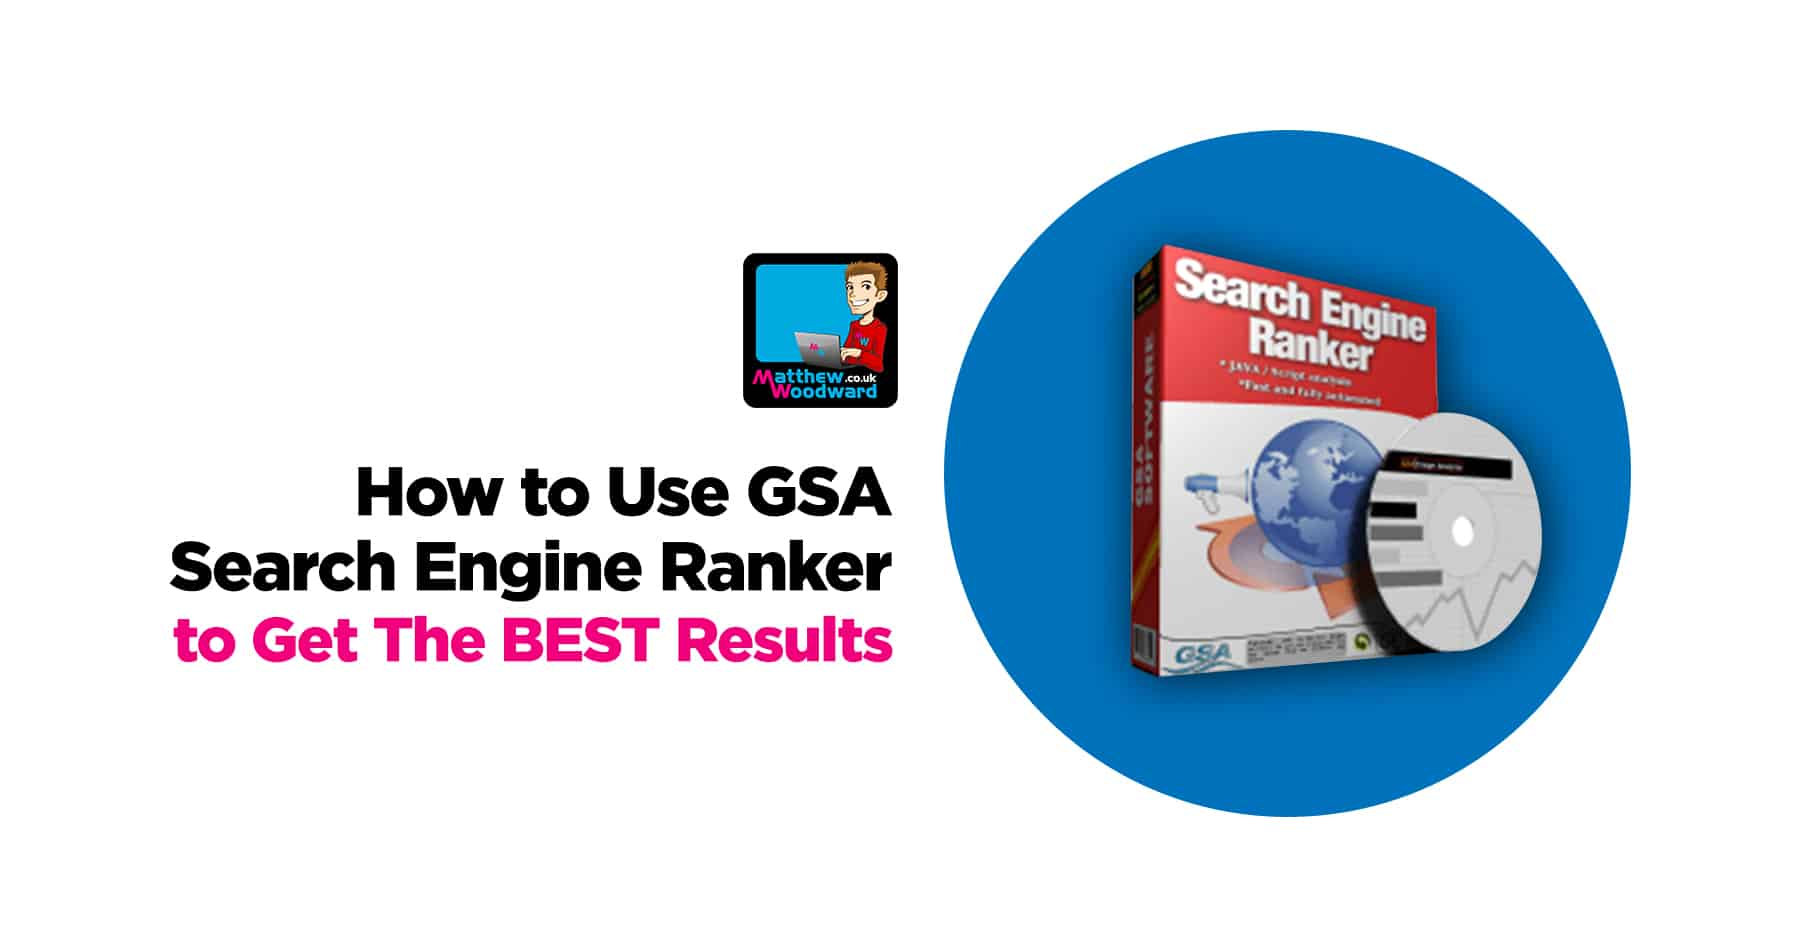 Learn How To Use GSA Search Engine Ranker To Get The BEST Results